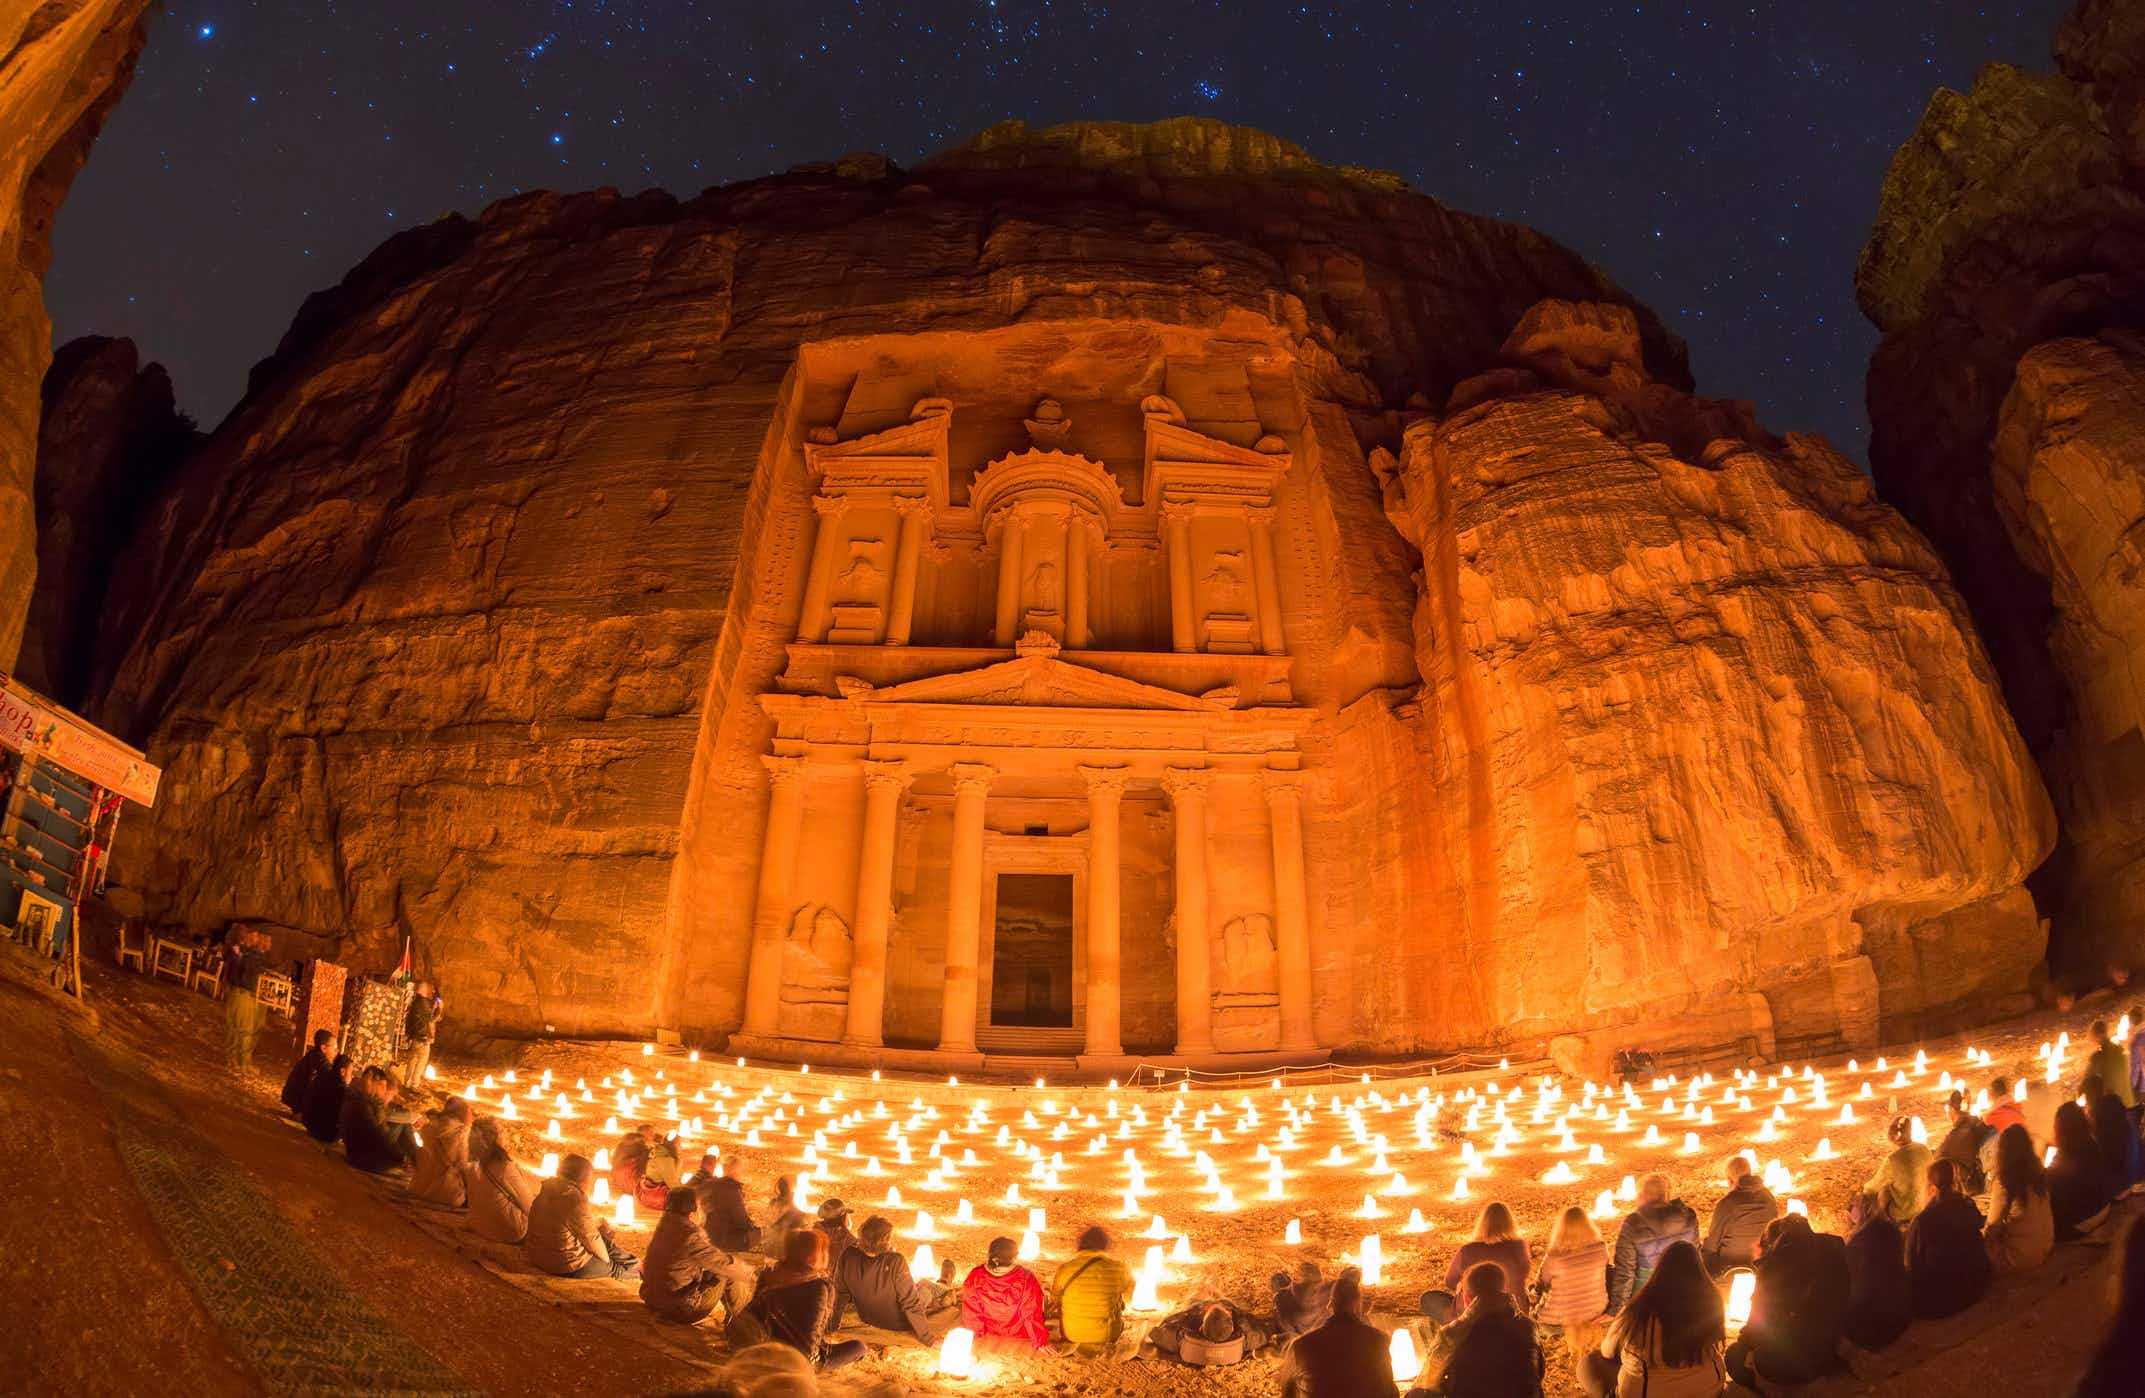 Connect with locals and travel Jordan with a purpose using this new map